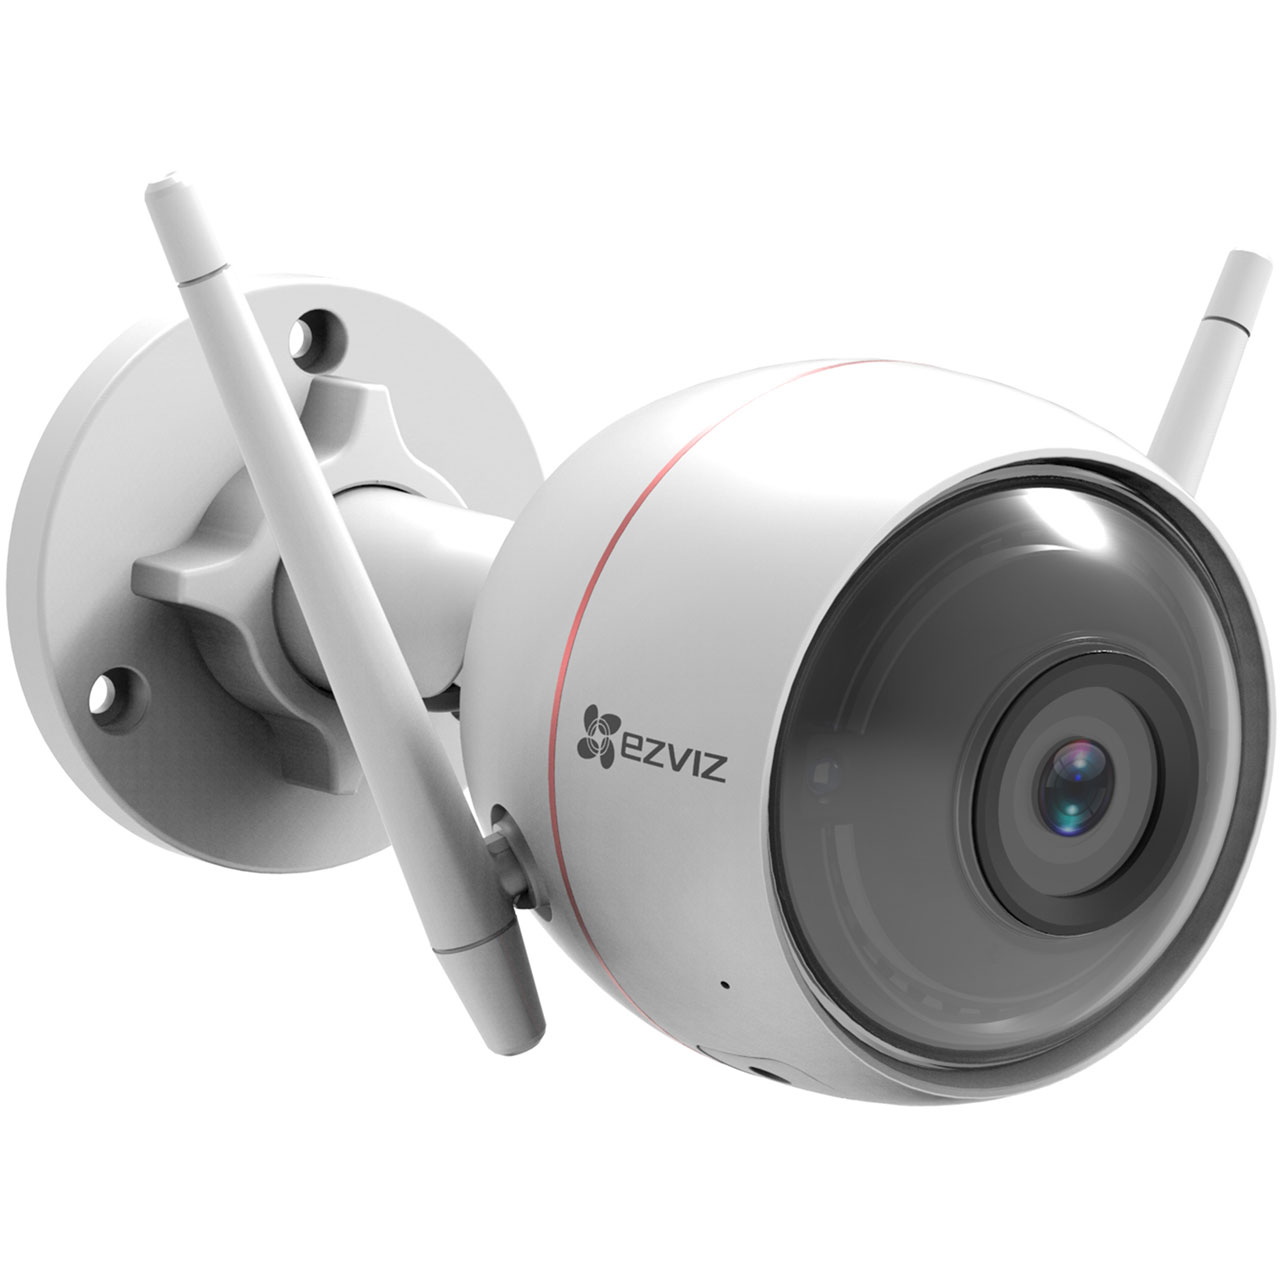 EZVIZ WiFi Smart Home Security Camera with Strobe Light - White